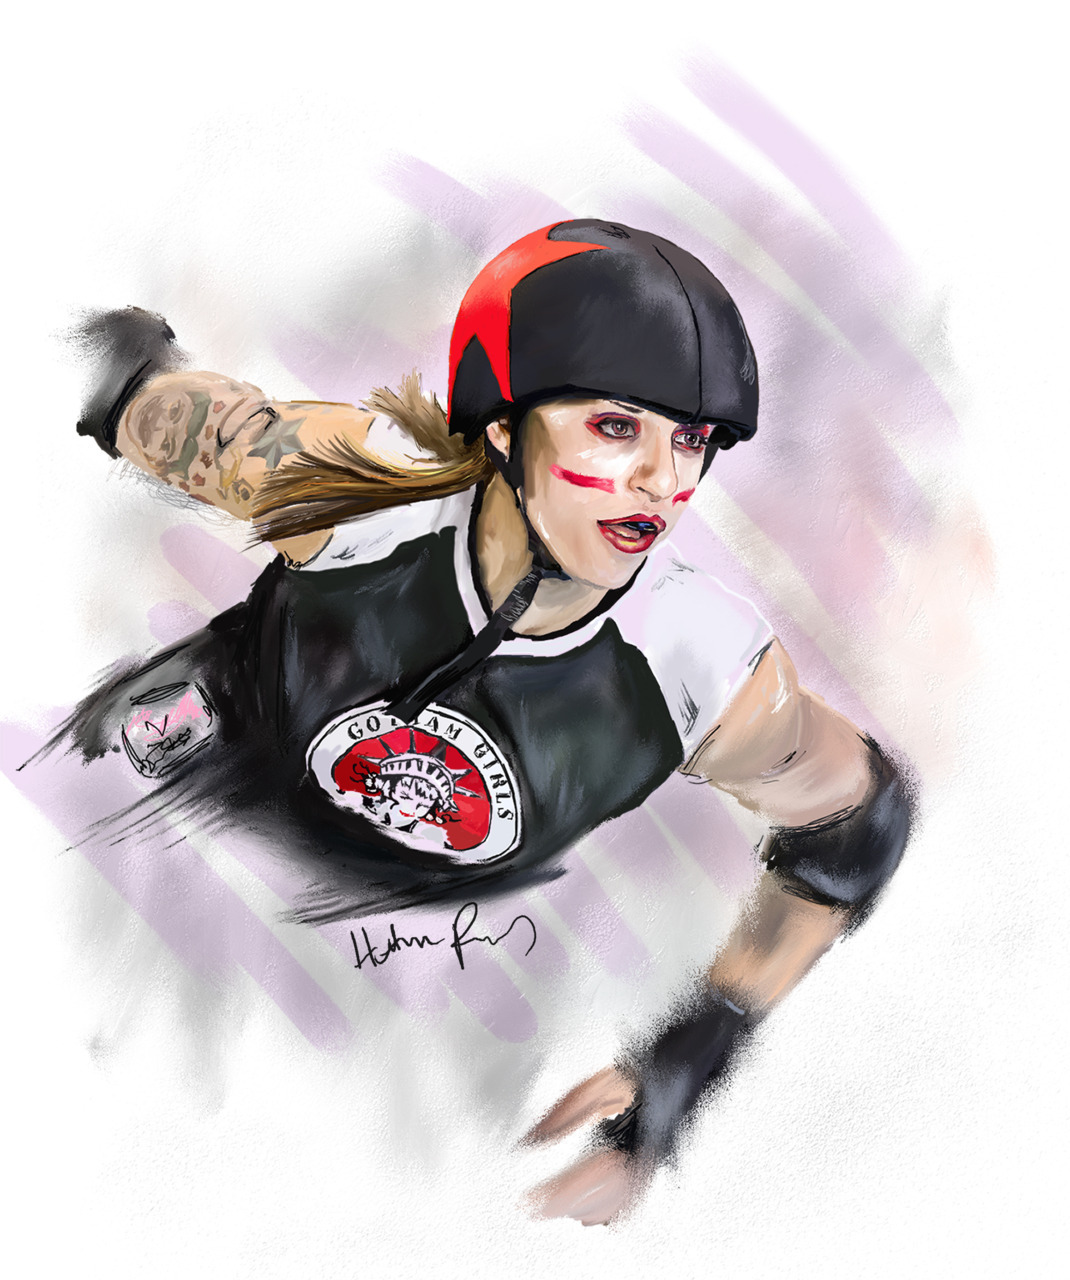 Portrait #2 in my Derby Heroes series. I decided to feature Suzy Hotrod from Gotham Girls Roller Derby out of NYC. I referenced a photo taken by Joe Rollerfan. Done in Corel Painter.